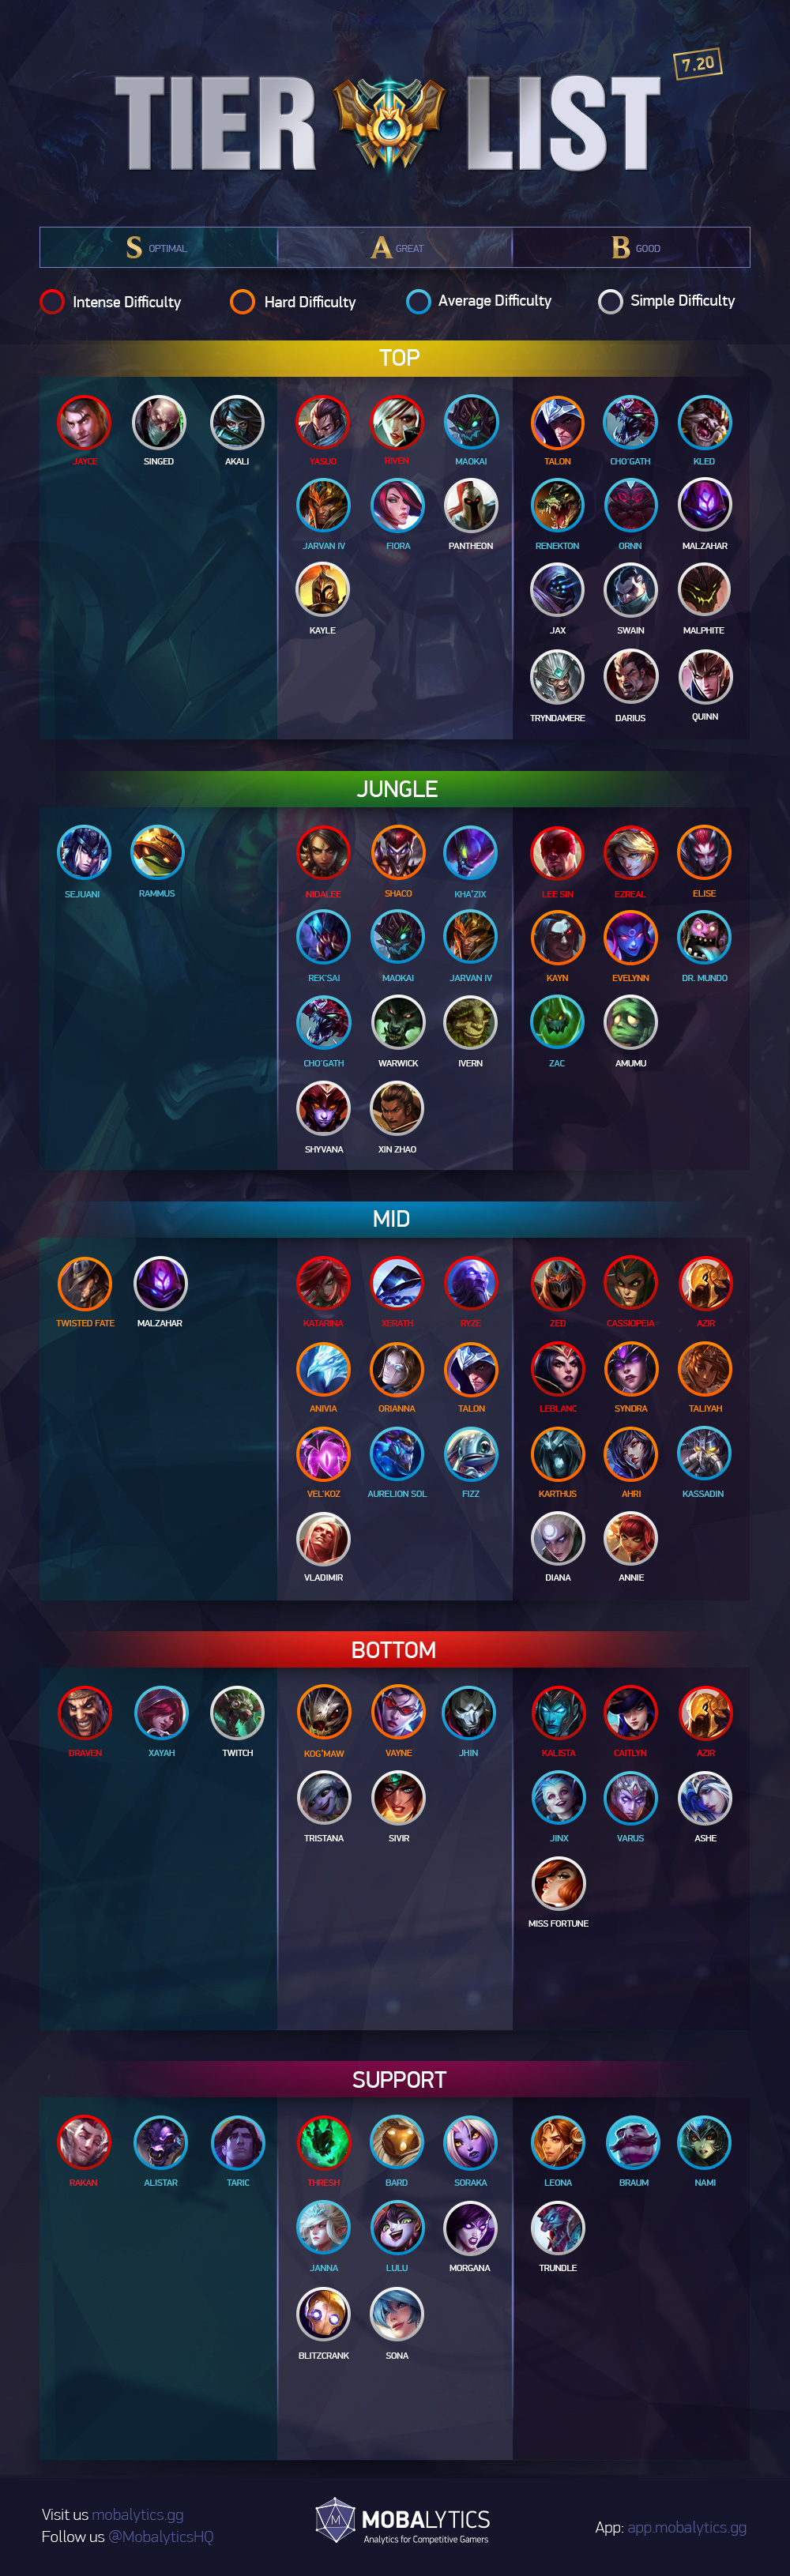 how to carry solo queue season 7